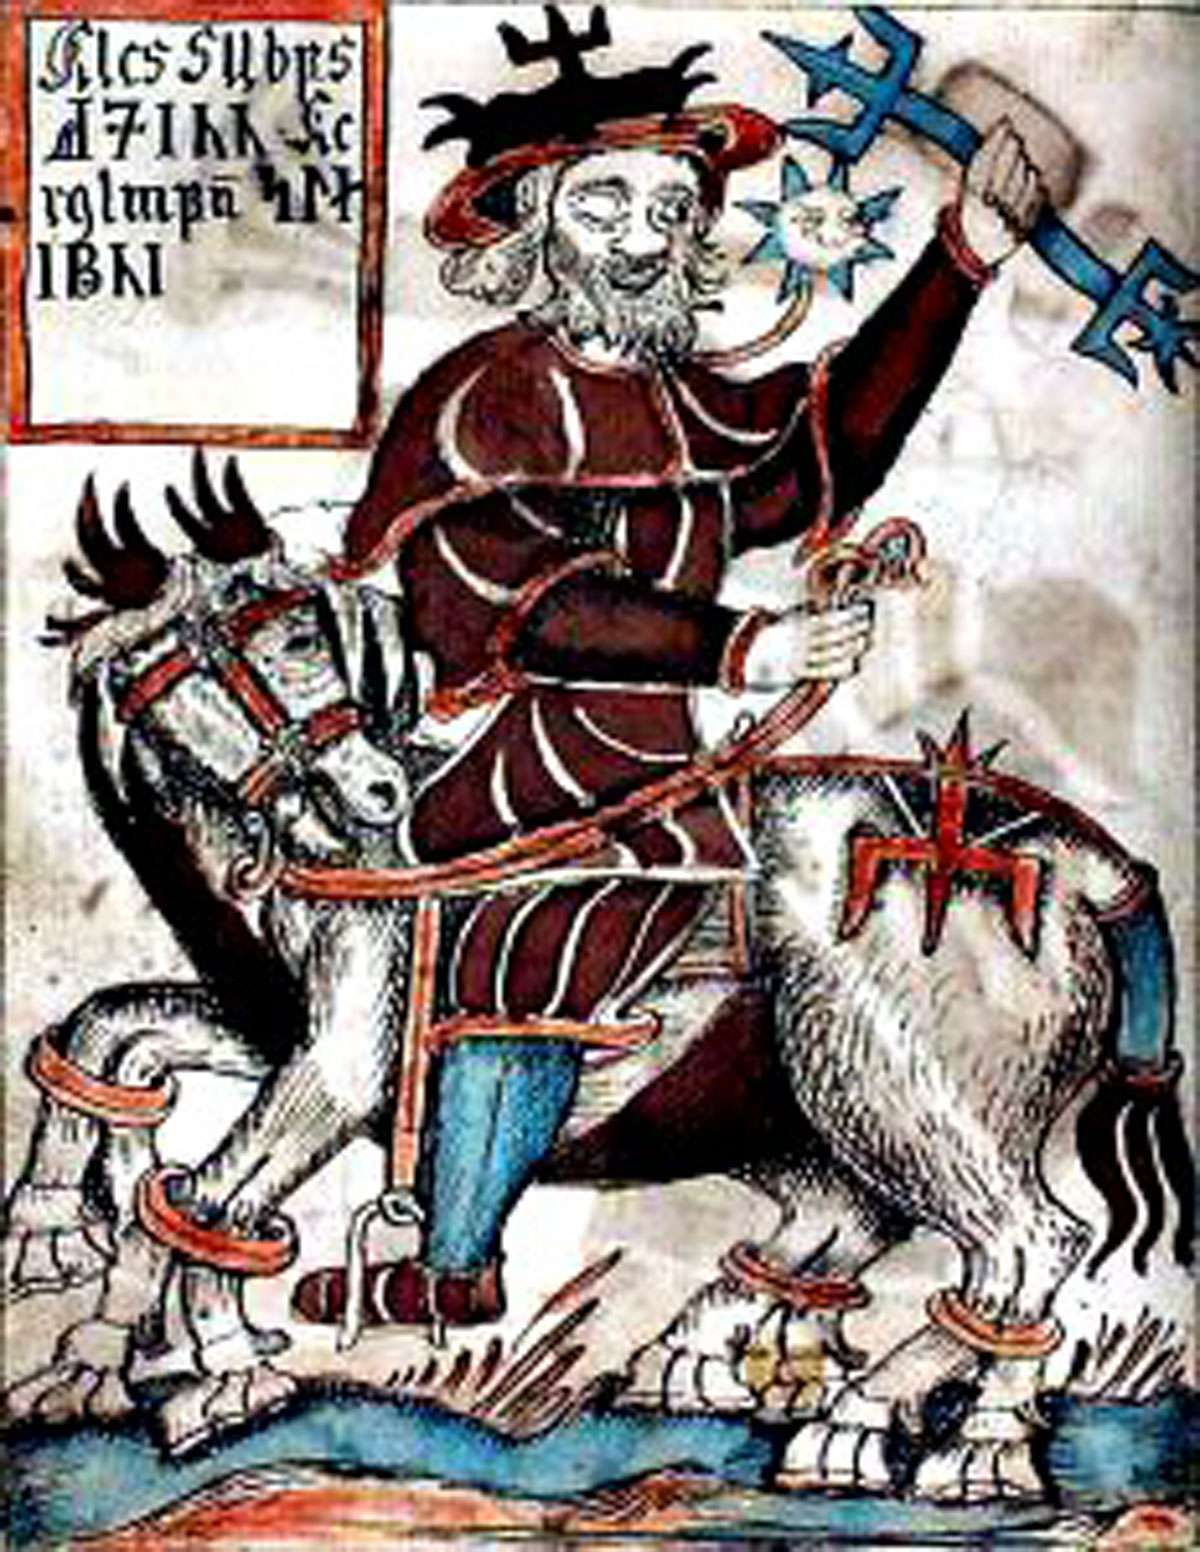 Odin rides the eight-legged horse Sleipnir from the 18th century Icelandic manuscript now in the care of the Danish Royal Library. [Public domain], via Wikimedia Commons